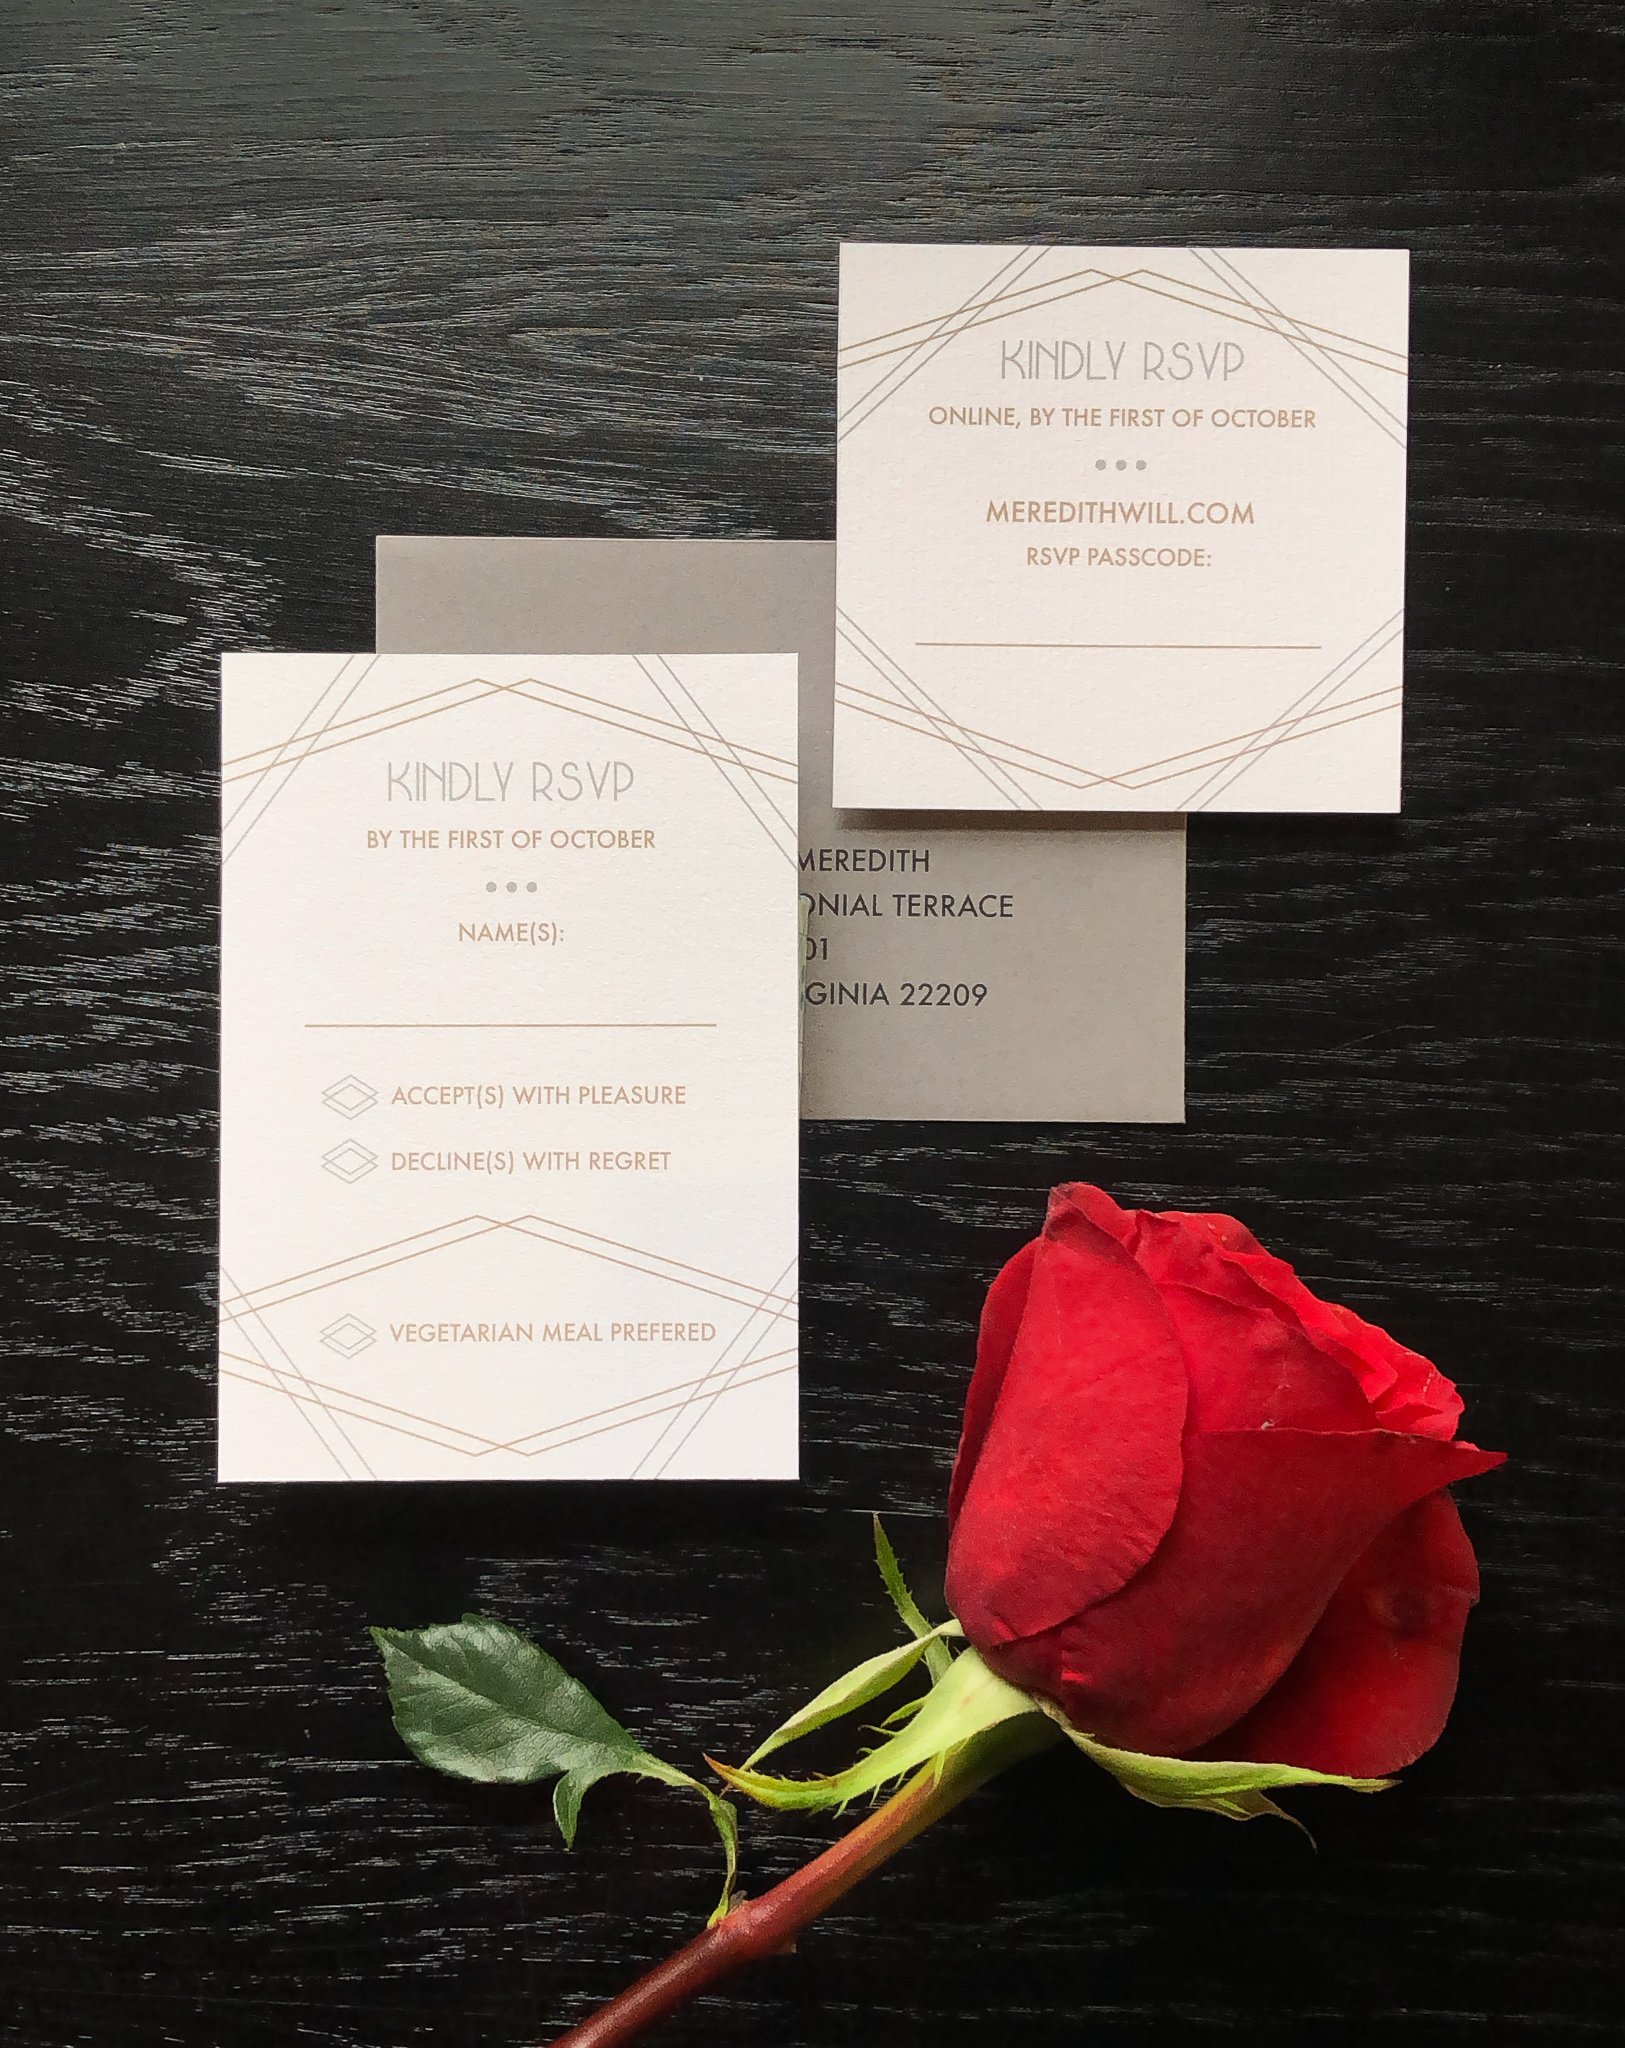 TypeA_ModernGatsbyWedding_RSVP-cards-traditional-and-online.jpg